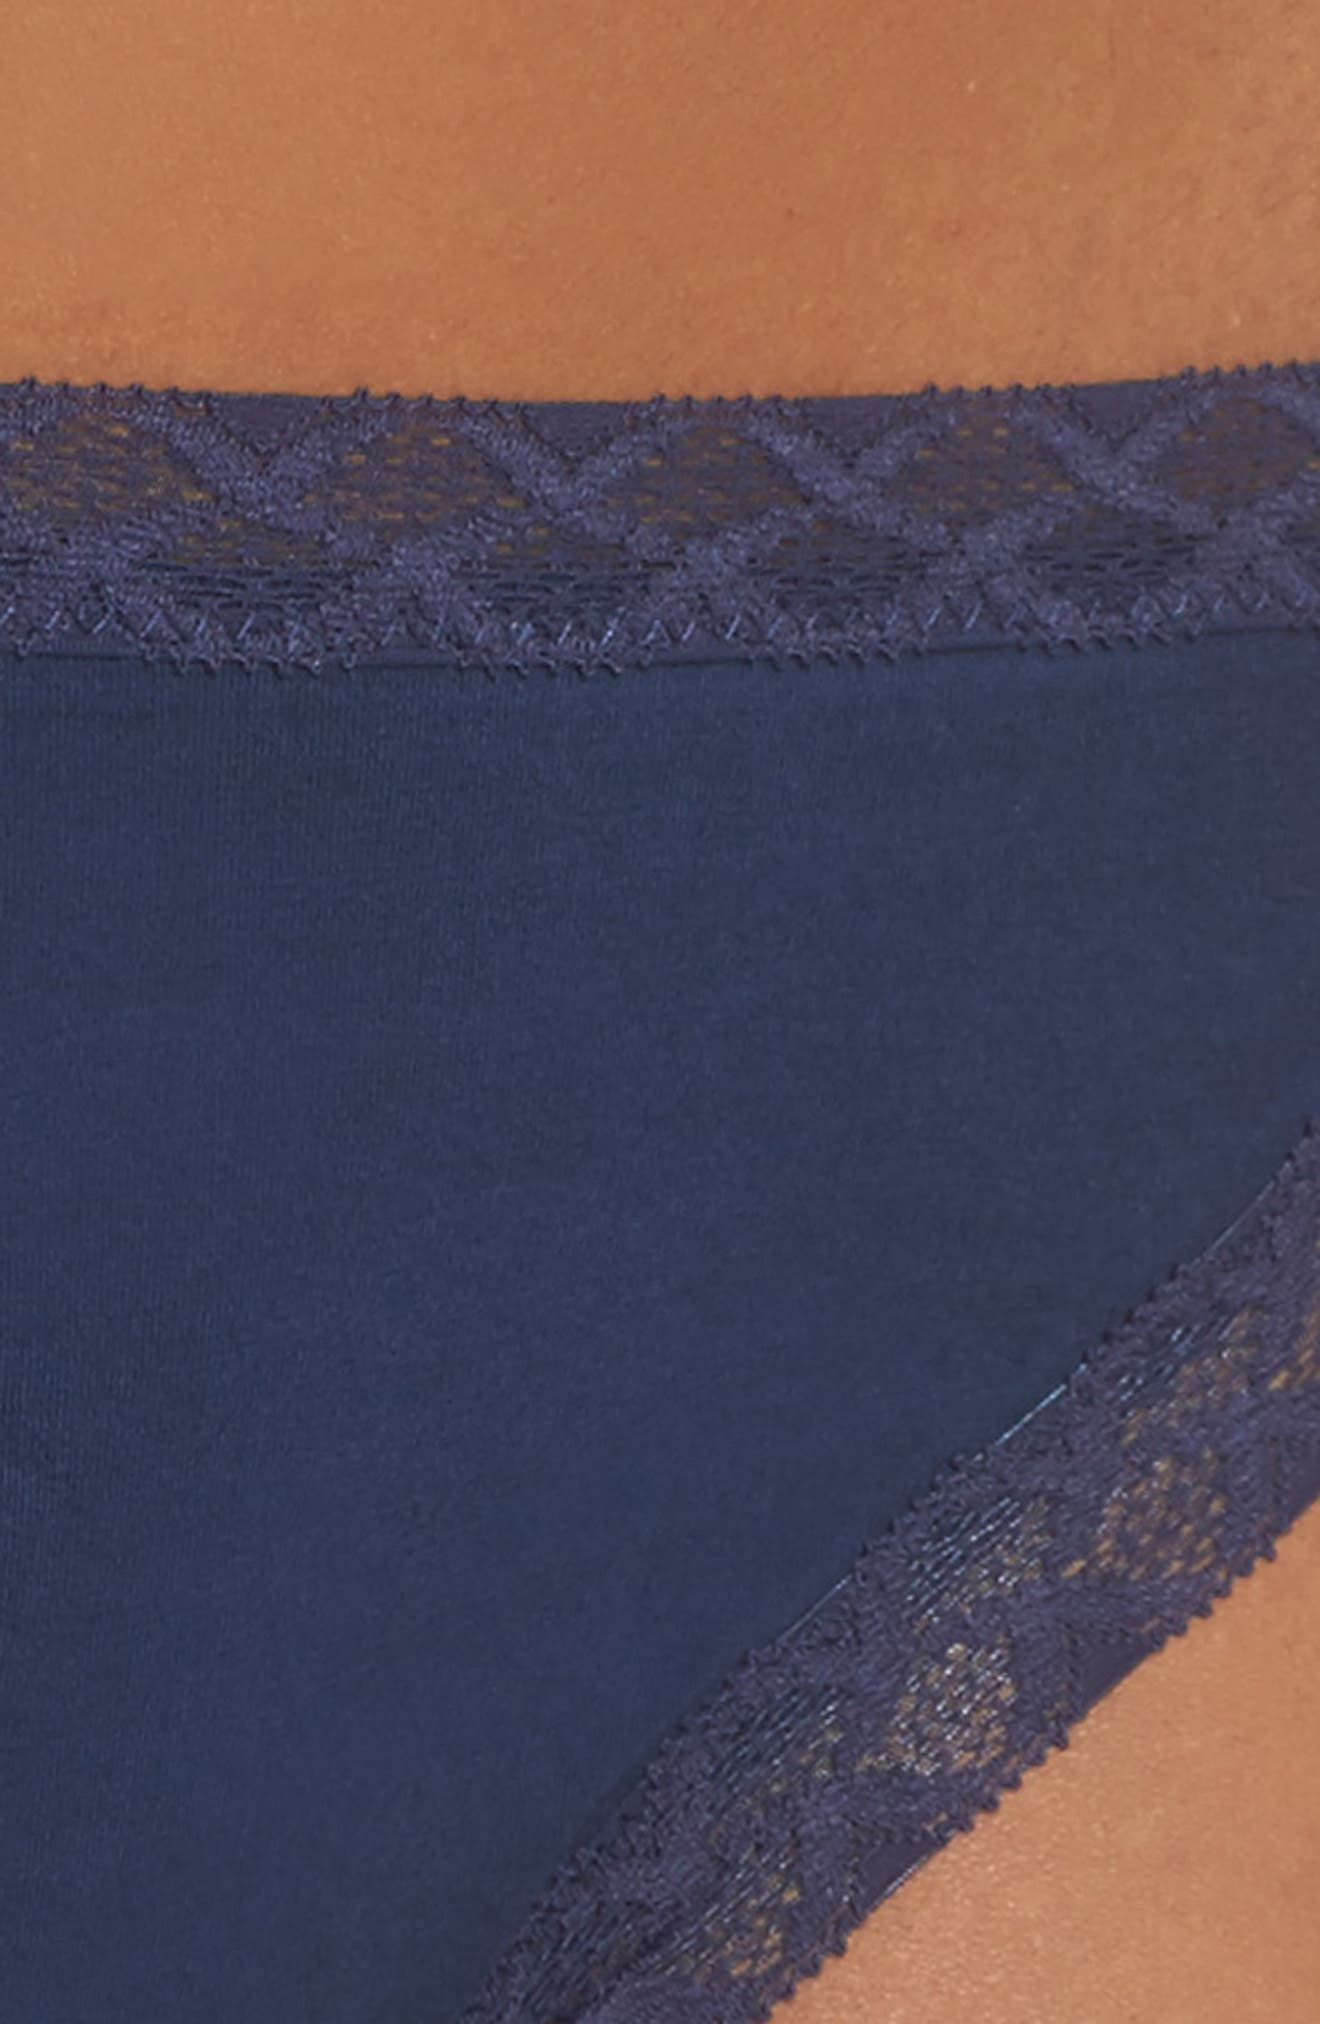 Bliss French Cut Briefs,                             Alternate thumbnail 4, color,                             NIGHT